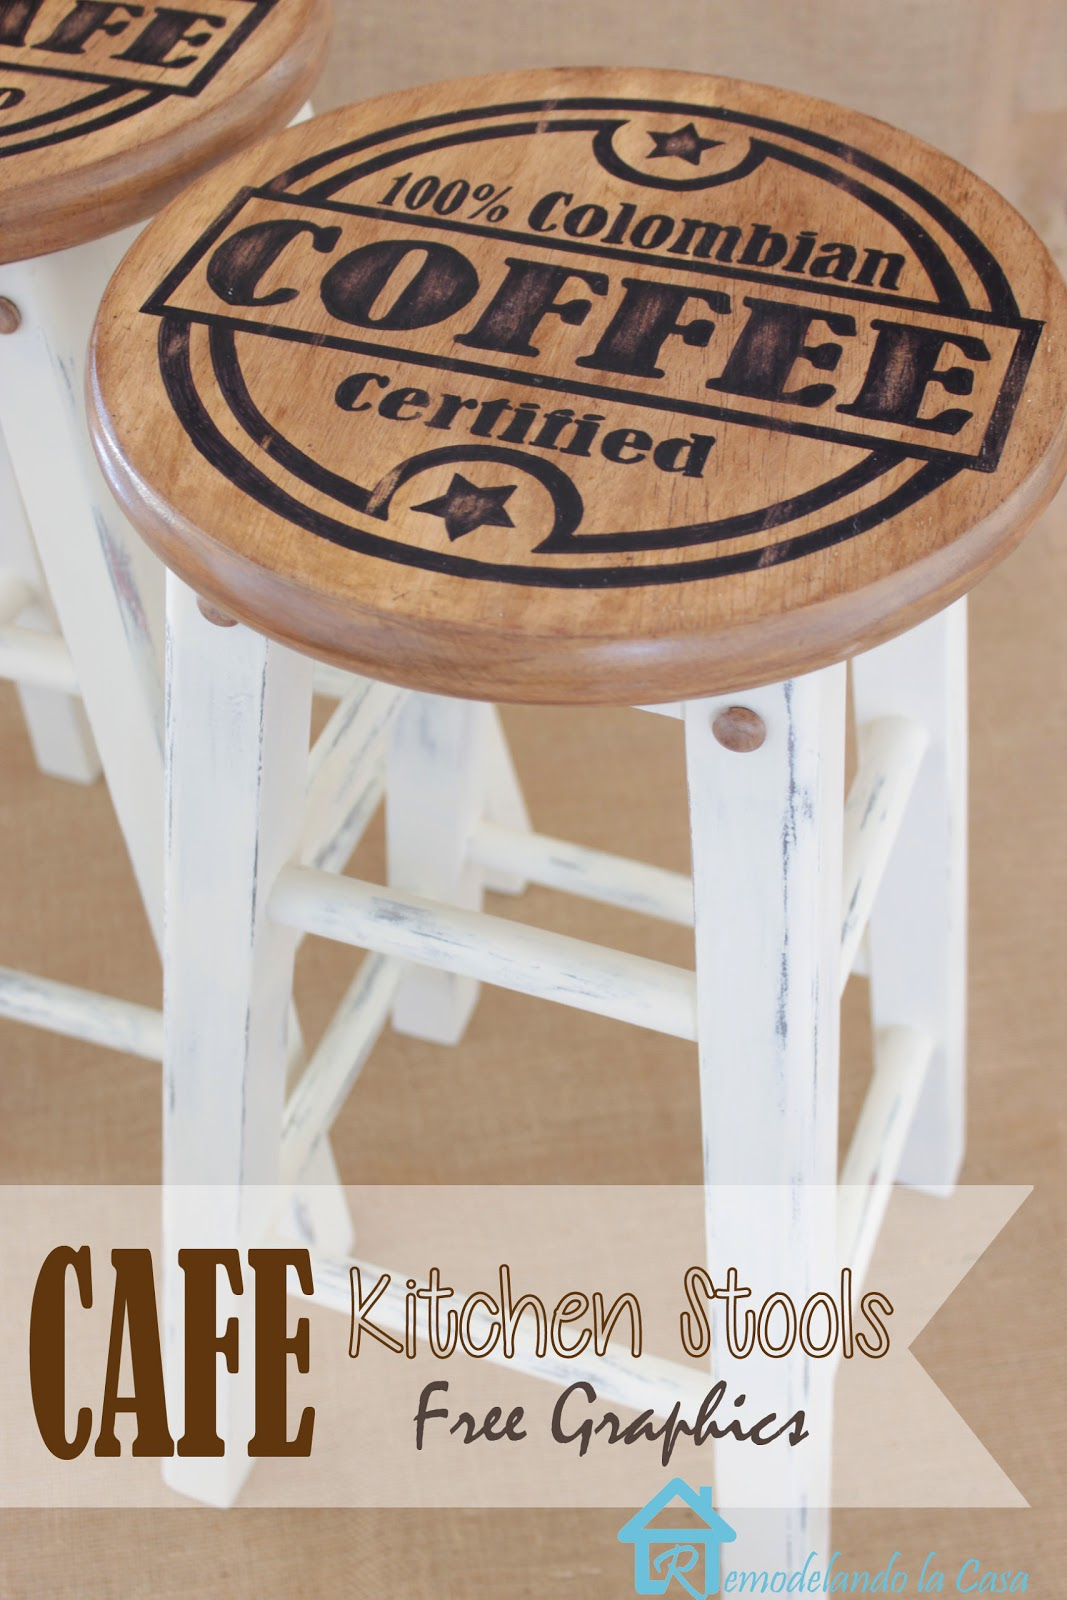 how to update the look of a set of stools with coffee graphics